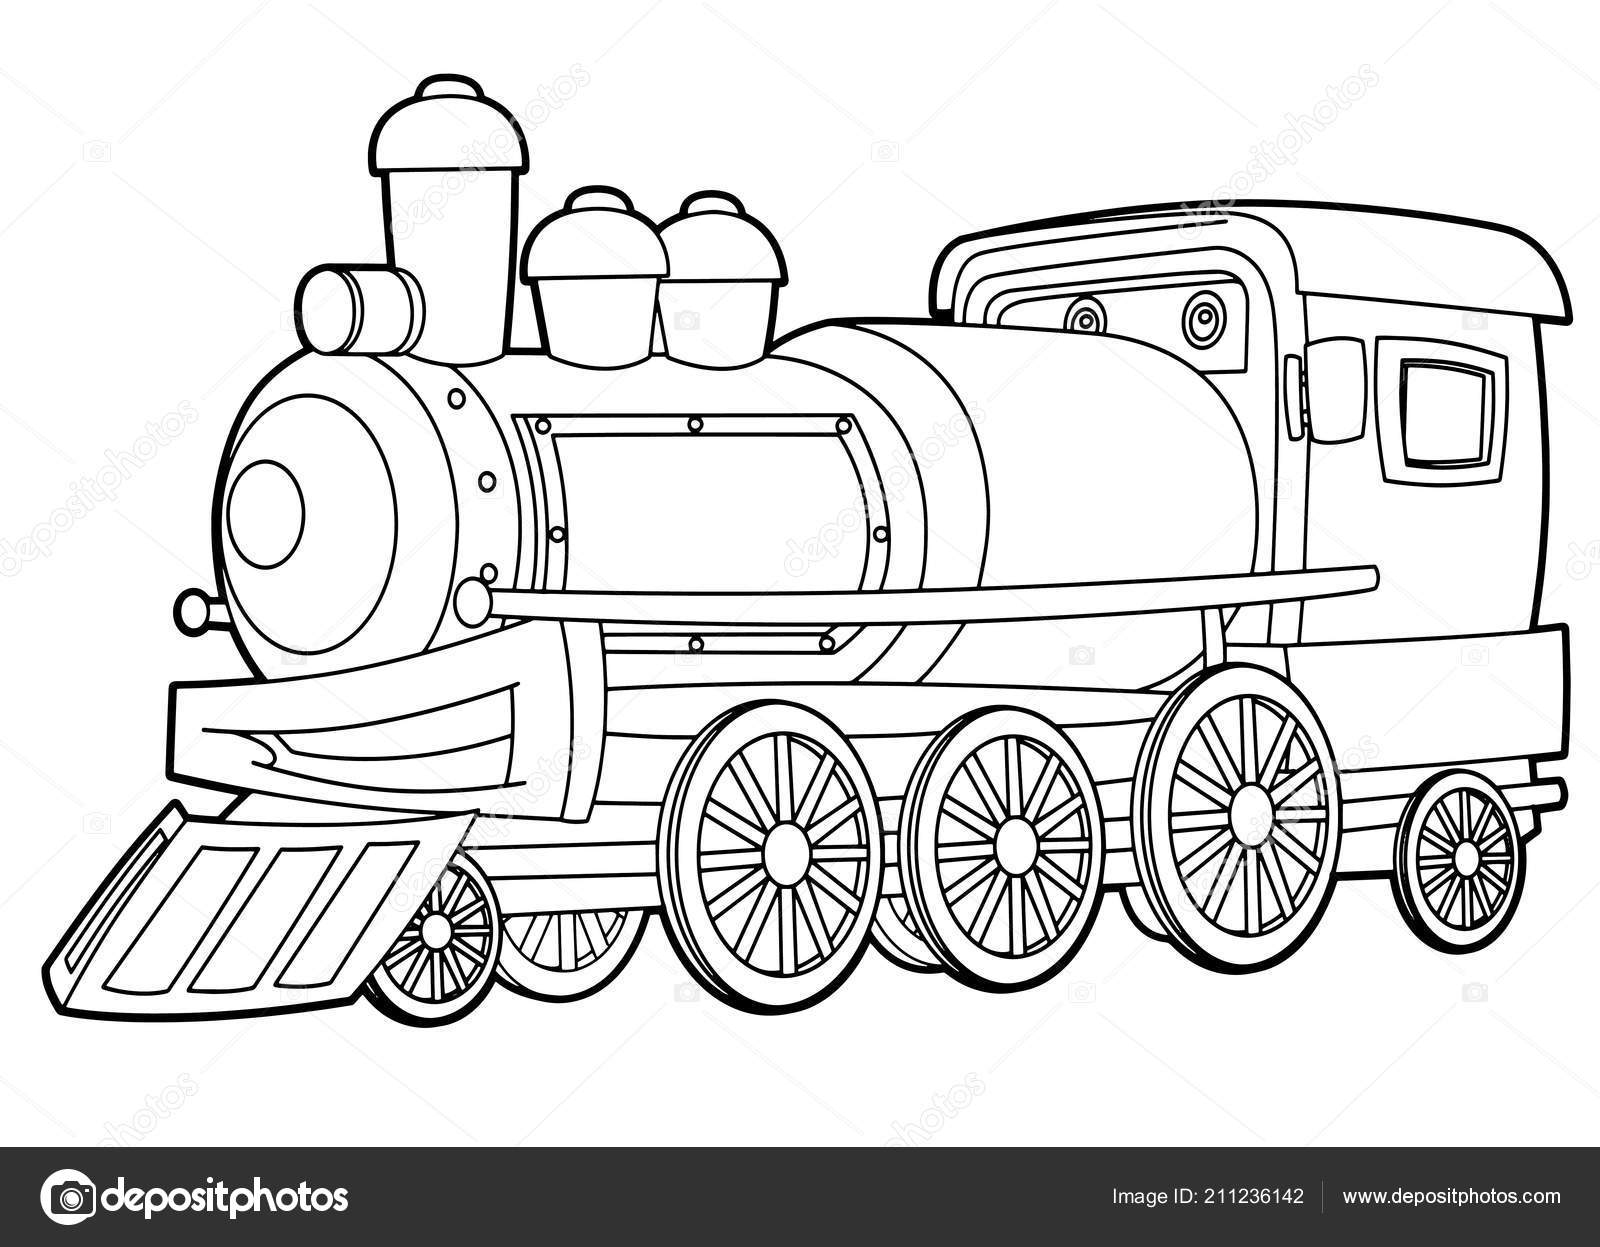 Cartoon Funny Looking Steam Train Vector Coloring Page Isolated